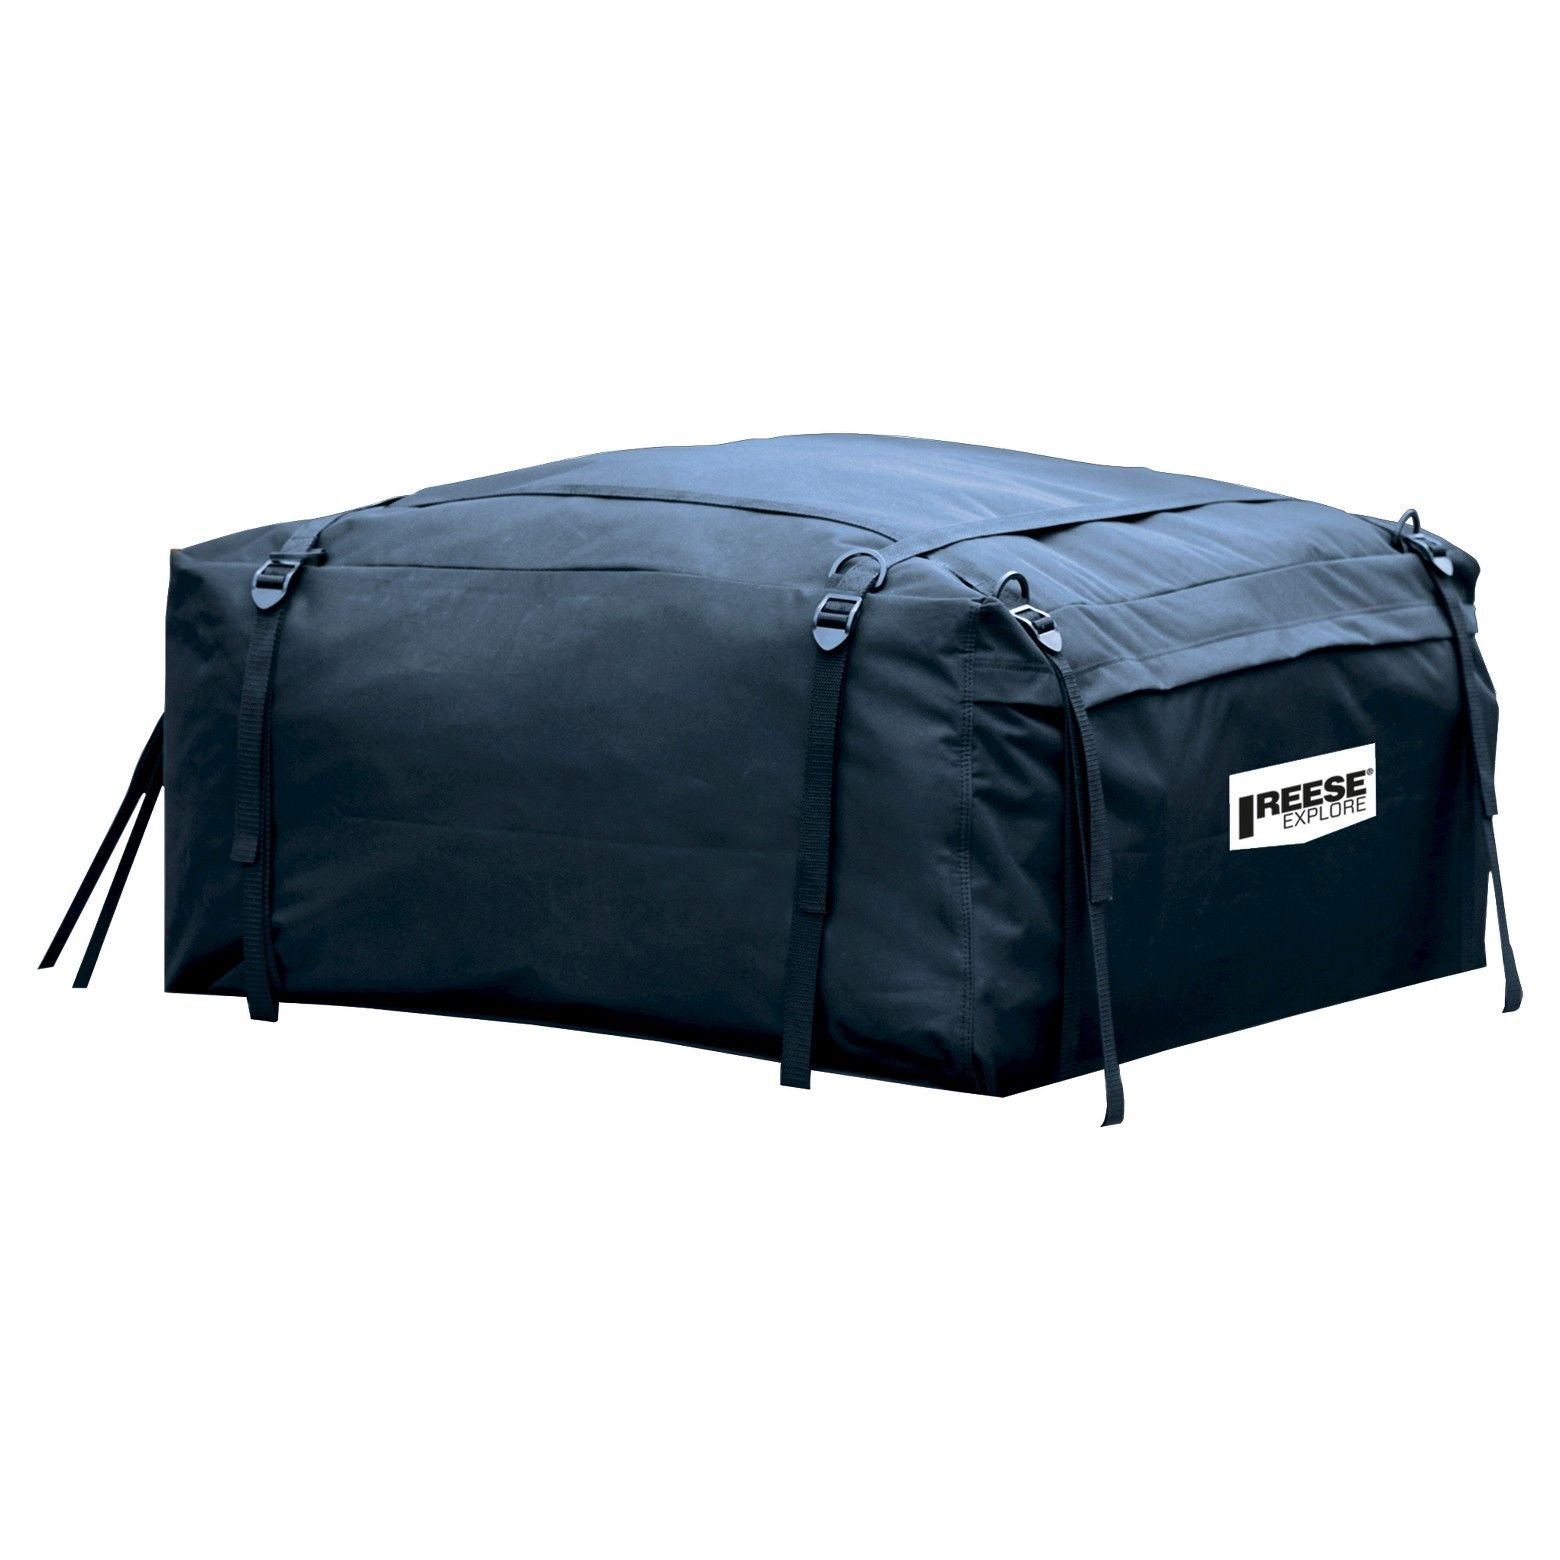 The REESE® Explore weather resistant storage bag is a